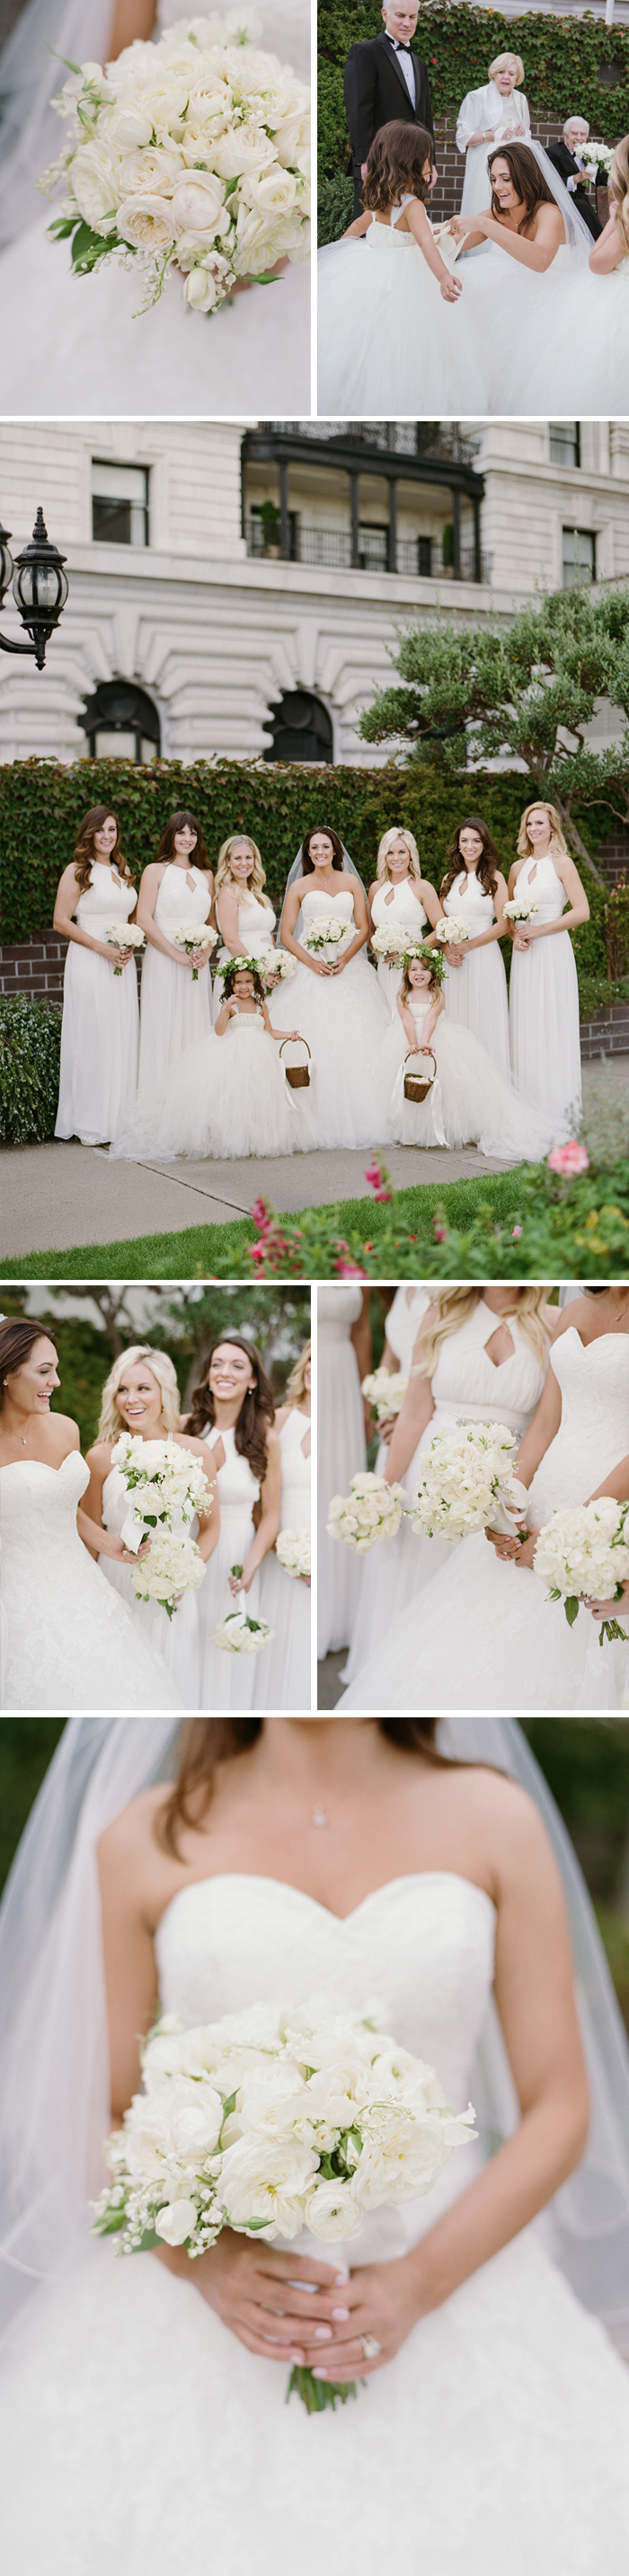 Bouquets and bridal party, dressed all in white, the bride bends to chat with her darling flower girls; photo by Sylvie Gil